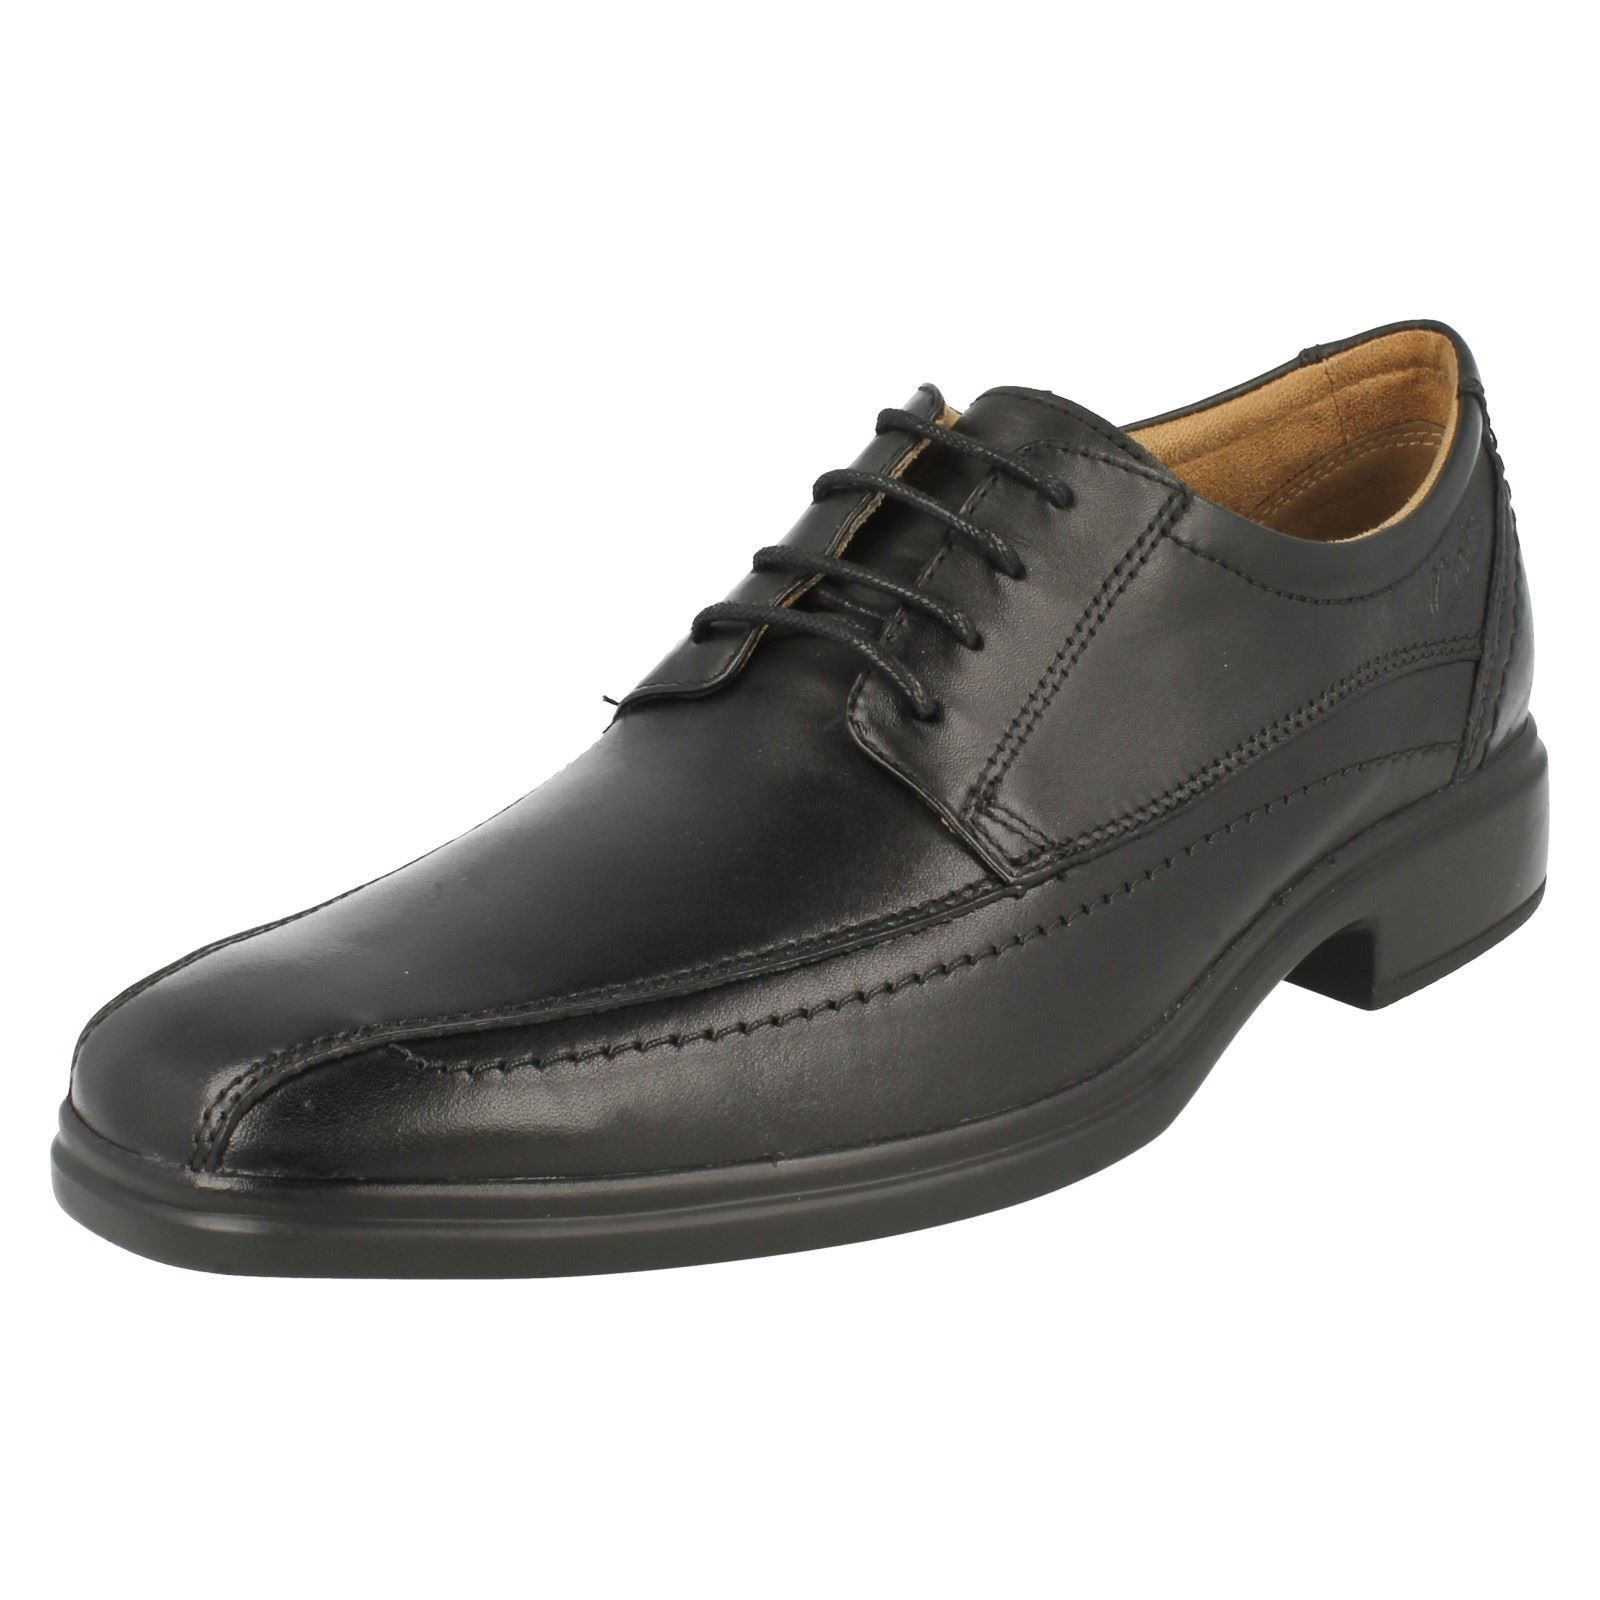 Mens Clarks Formal Lace Up schuhe - Glevo Over Over Over 1a8d39